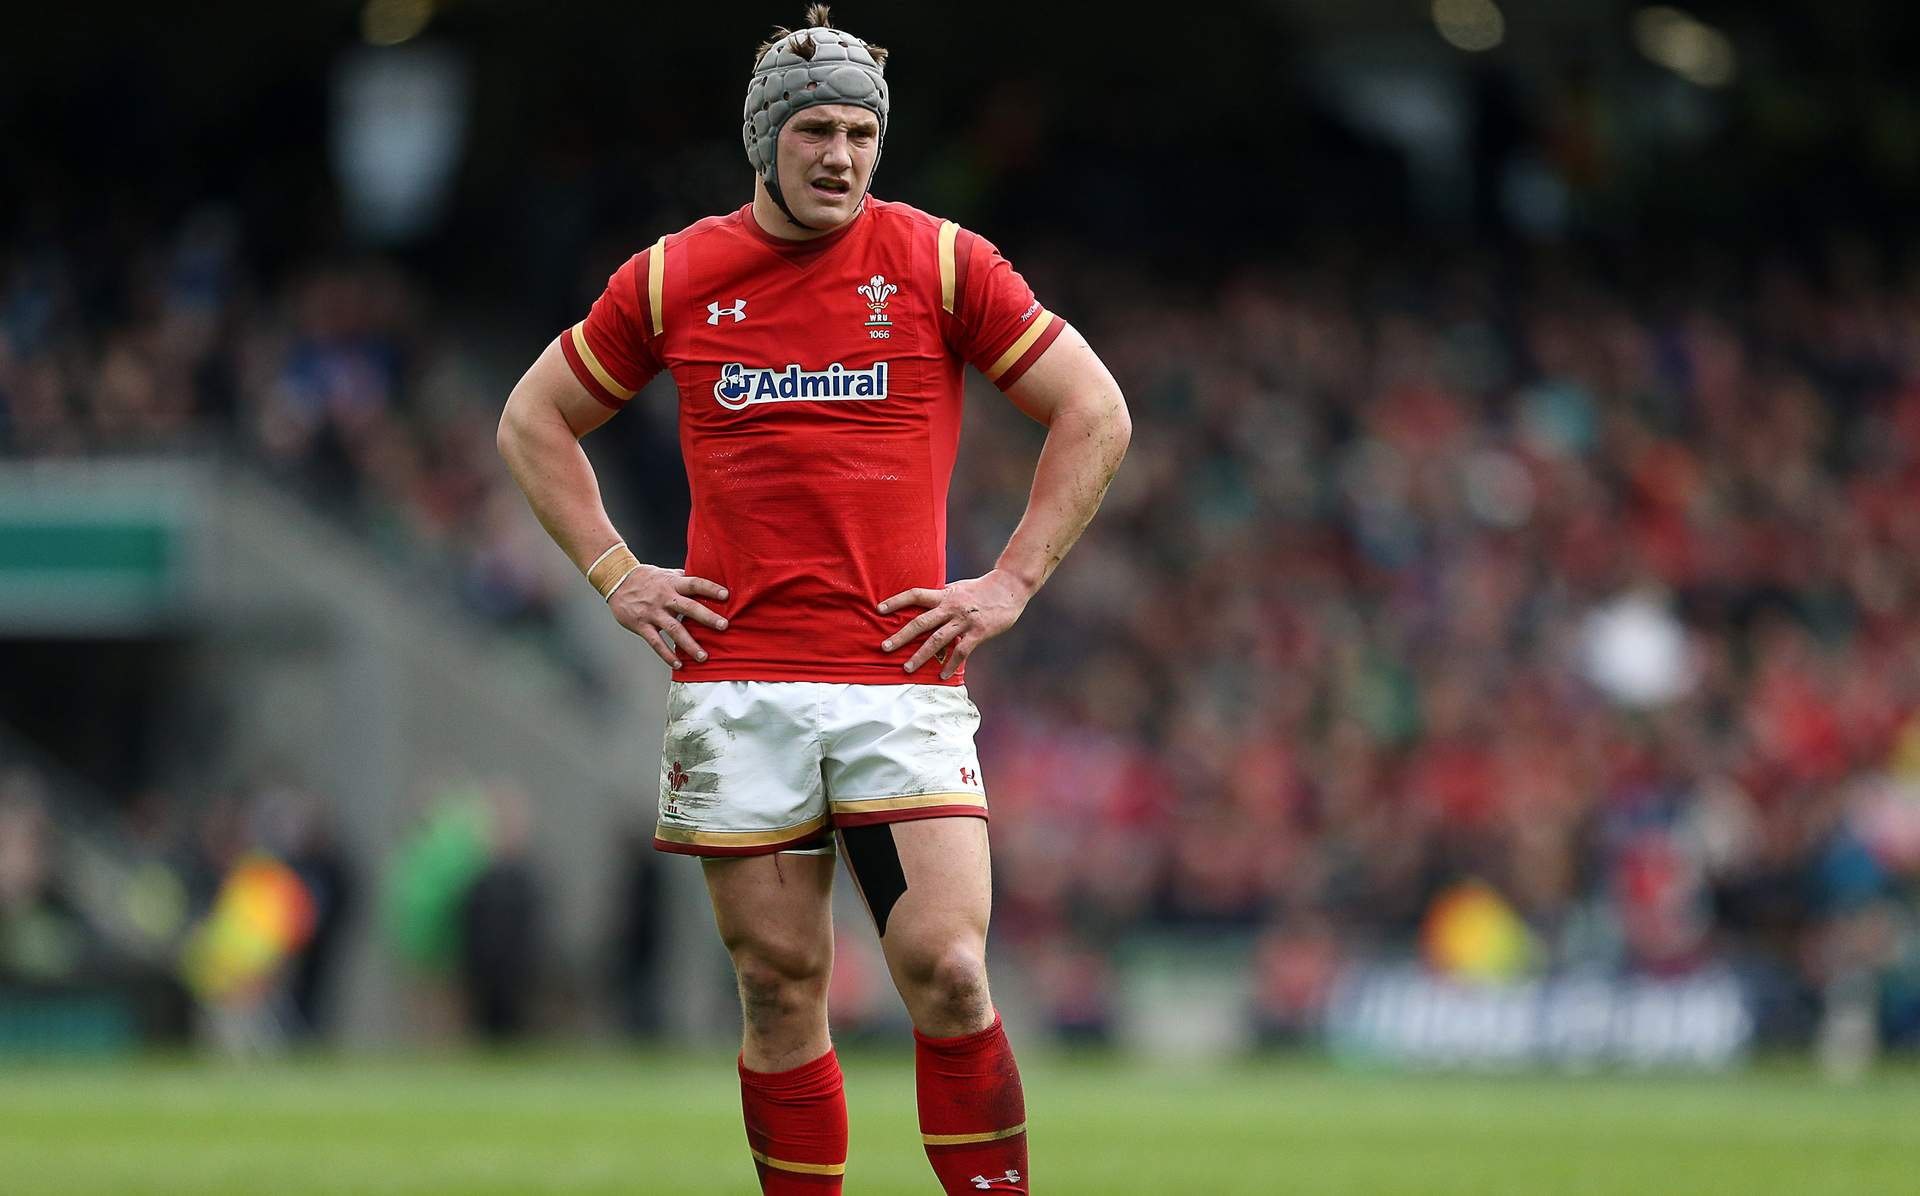 PREVIEW: No complacency from Wales as Davies celebrates